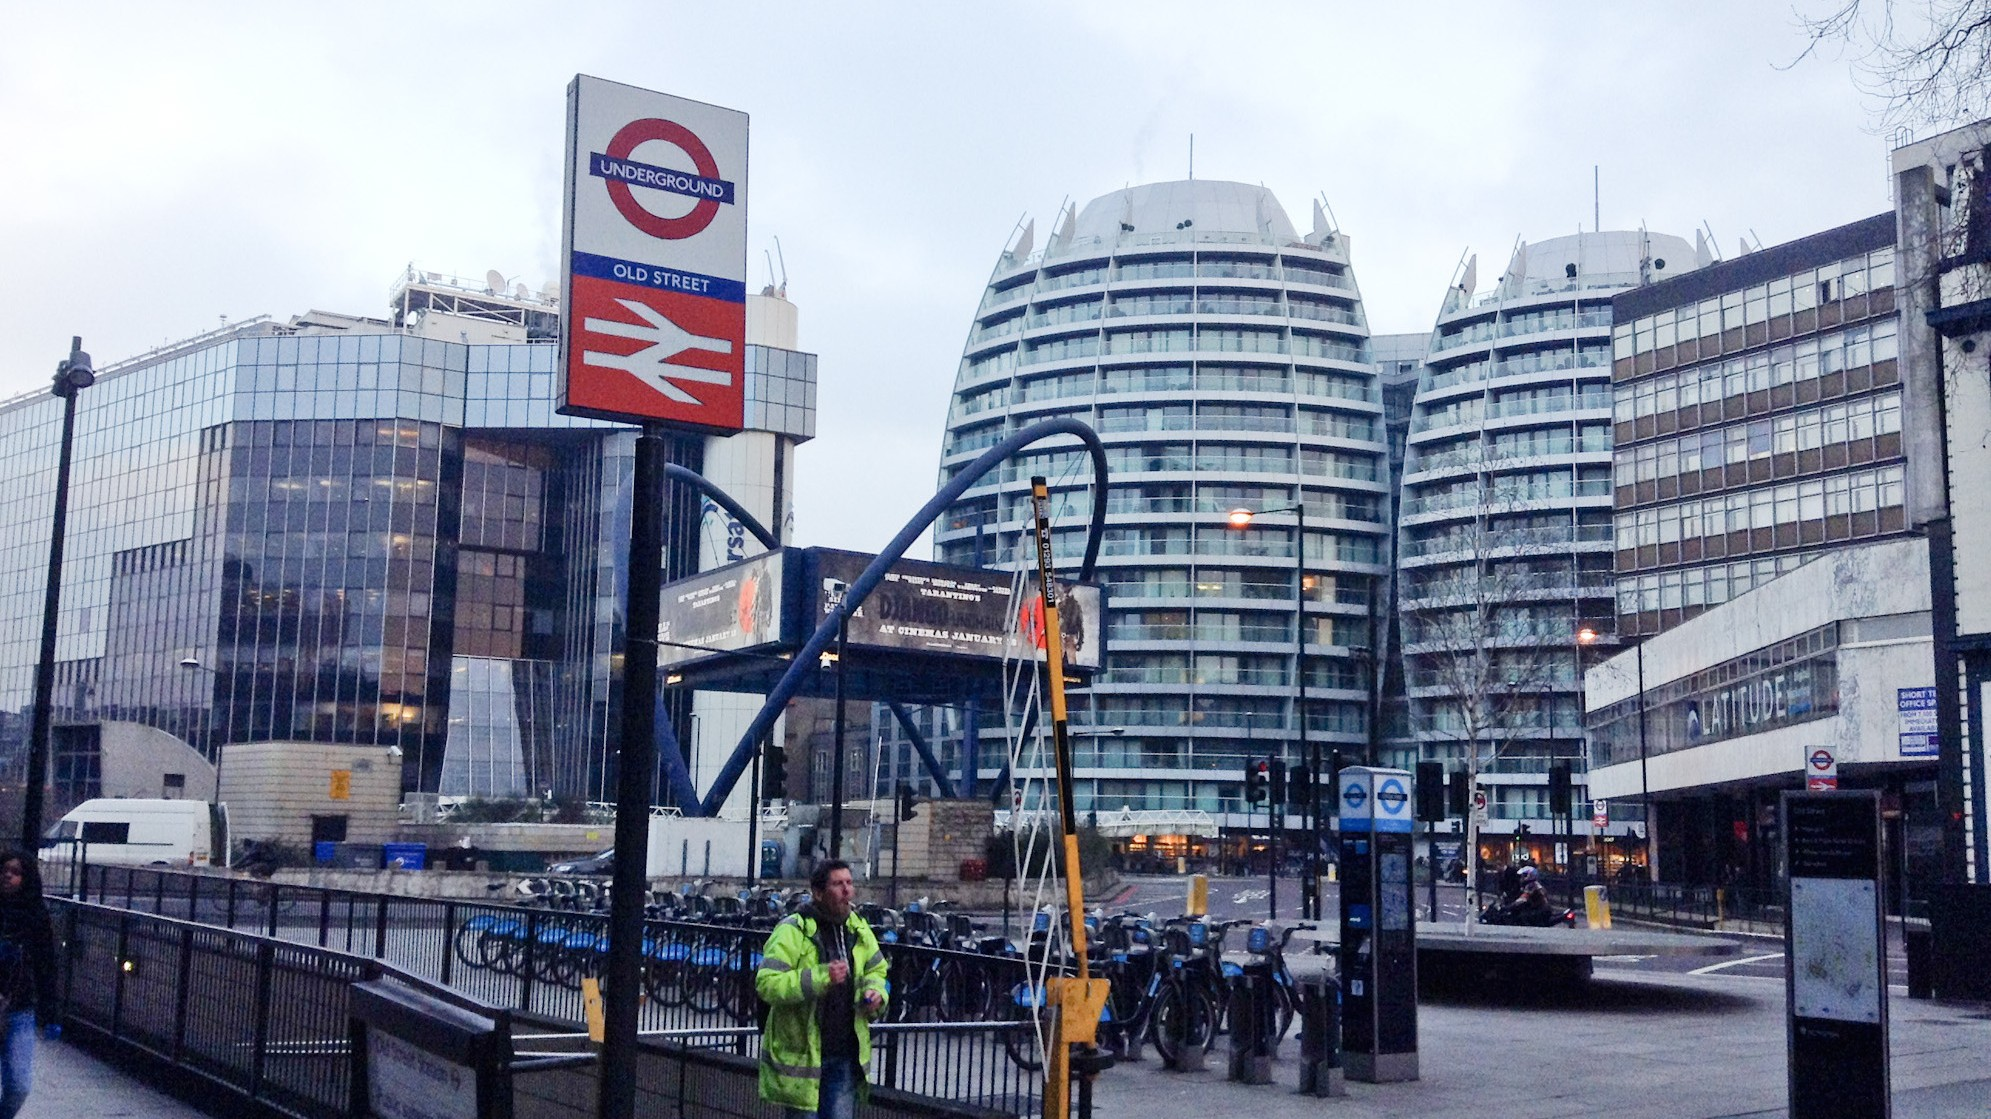 The Internet in London's Tech City Is So Slow It's an 'Embarrassment'